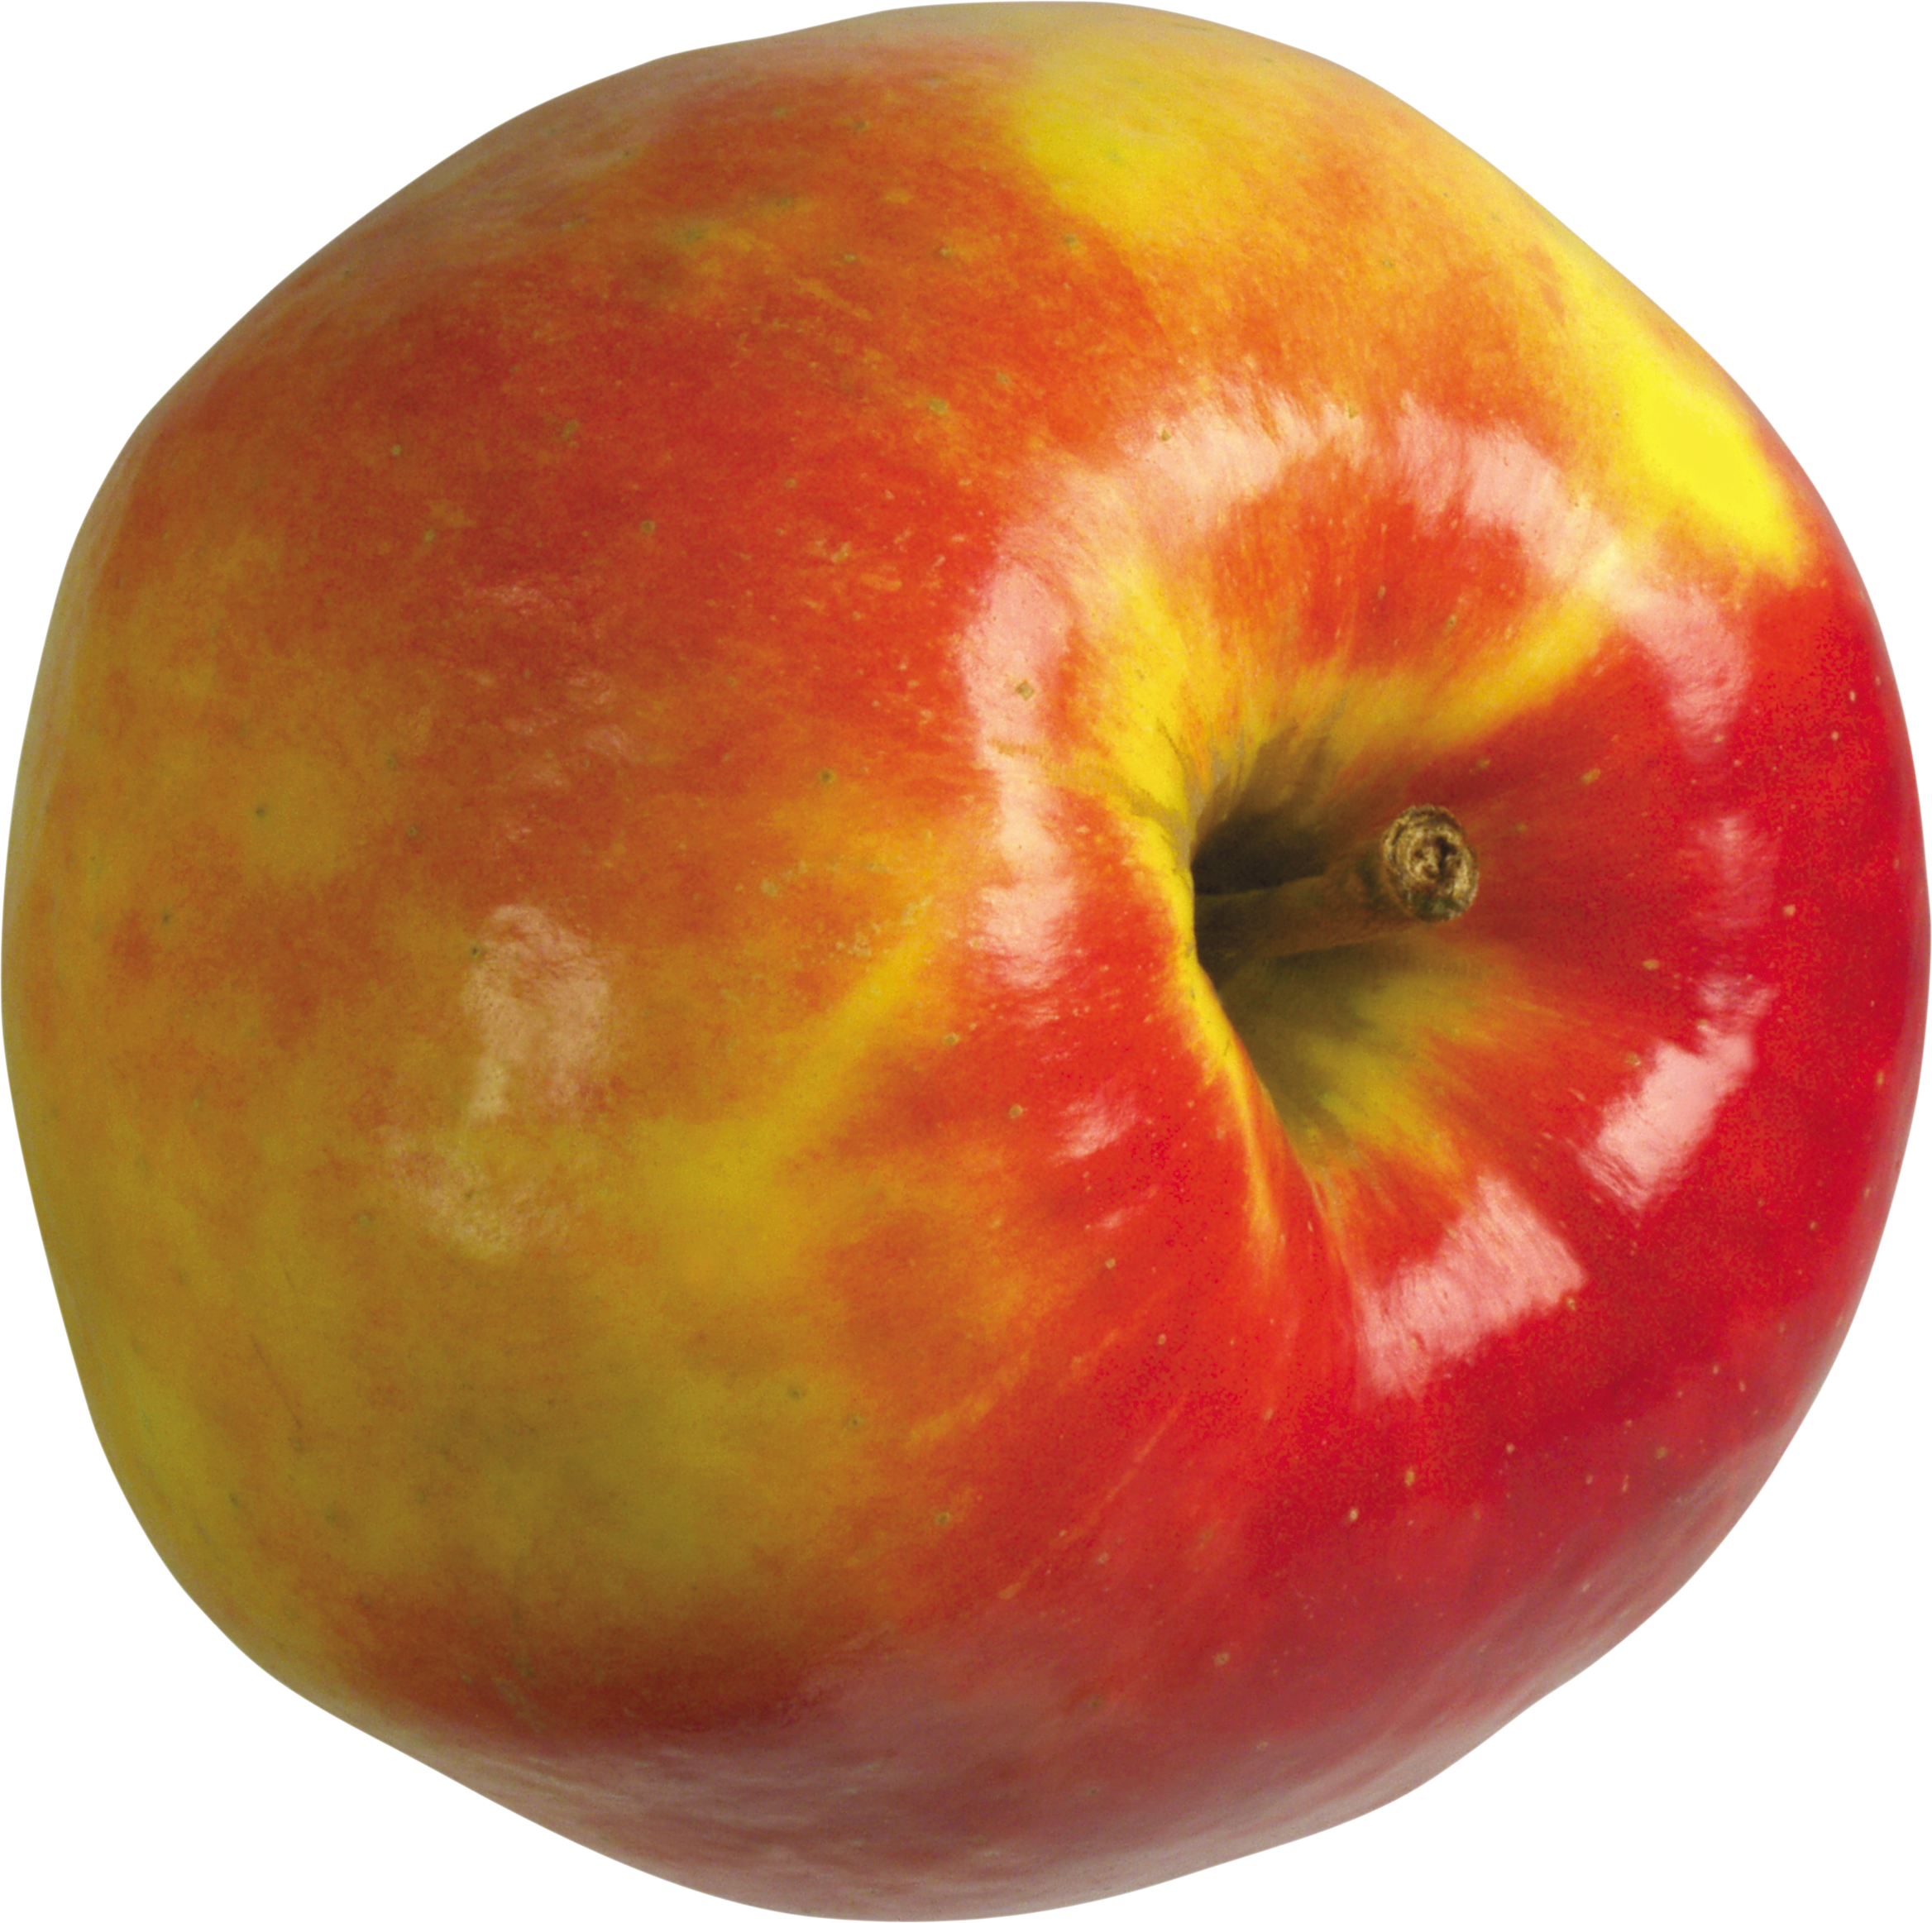 Apple Red and yellow